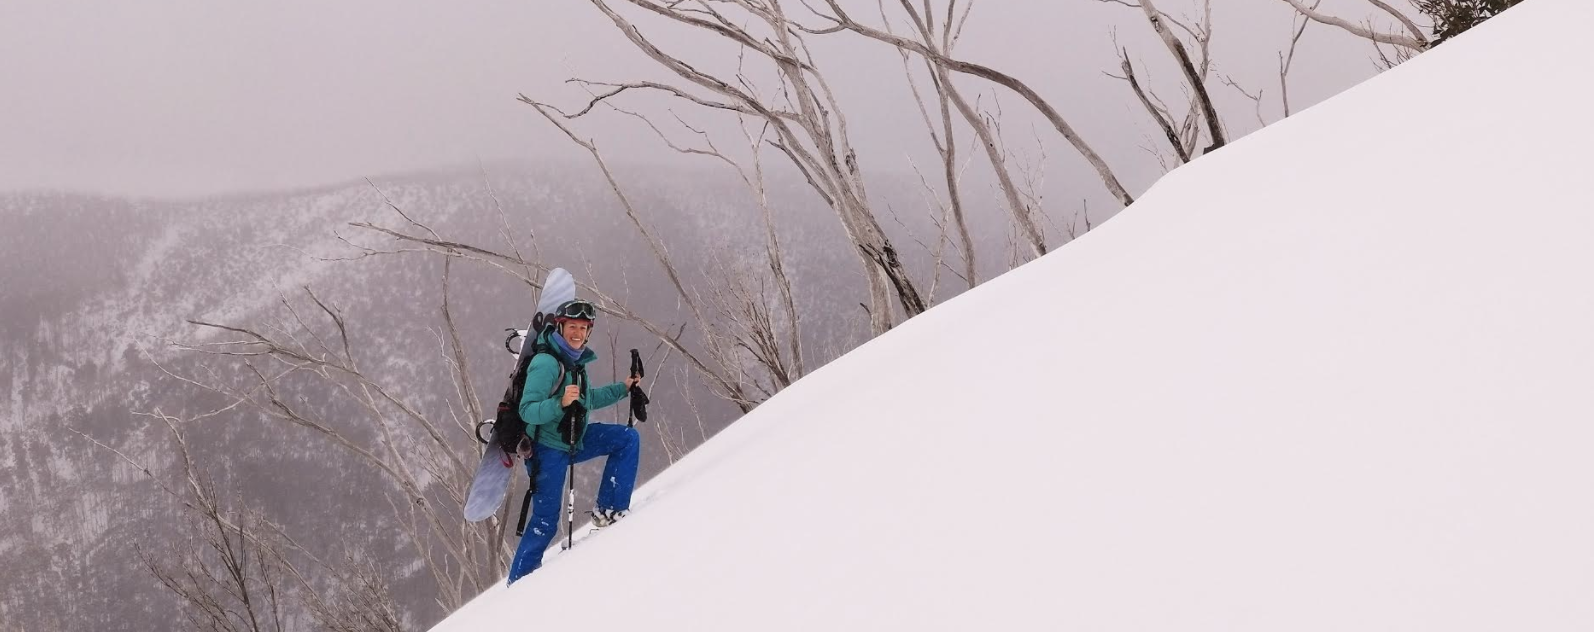 backcountry snowboarder and mother hiking